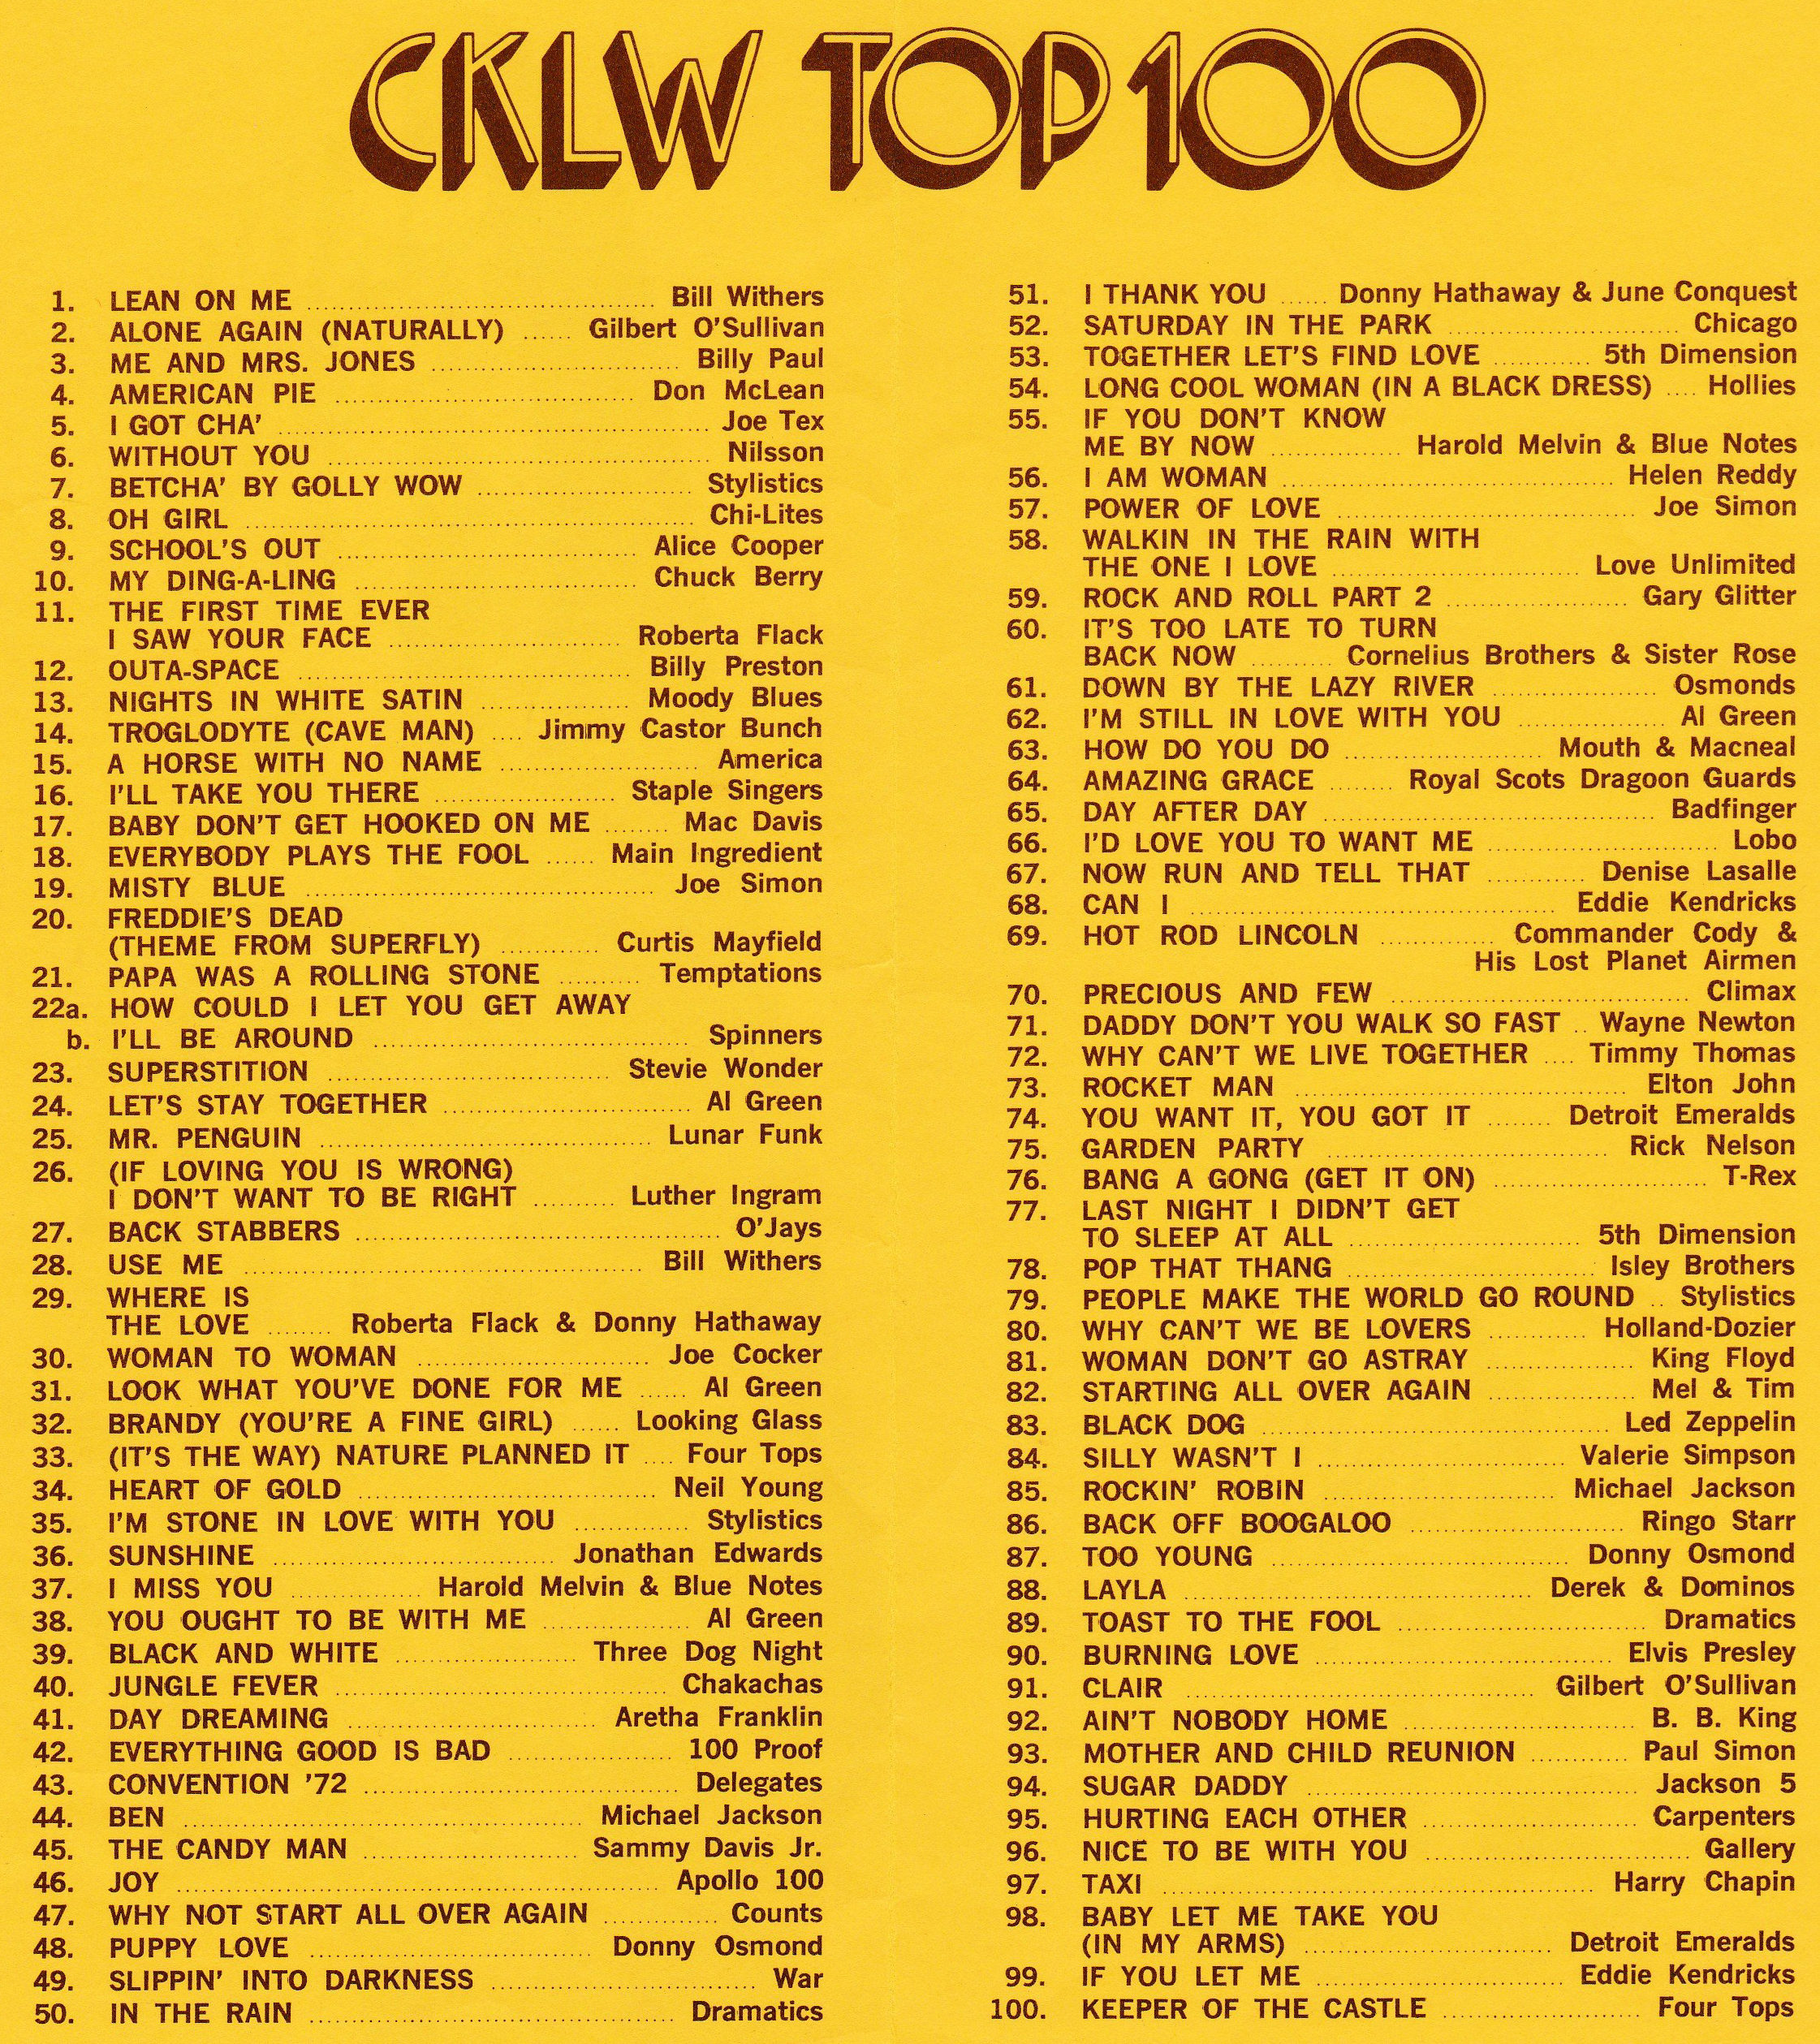 CKLW TOP 100 SURVEY FOR 1972